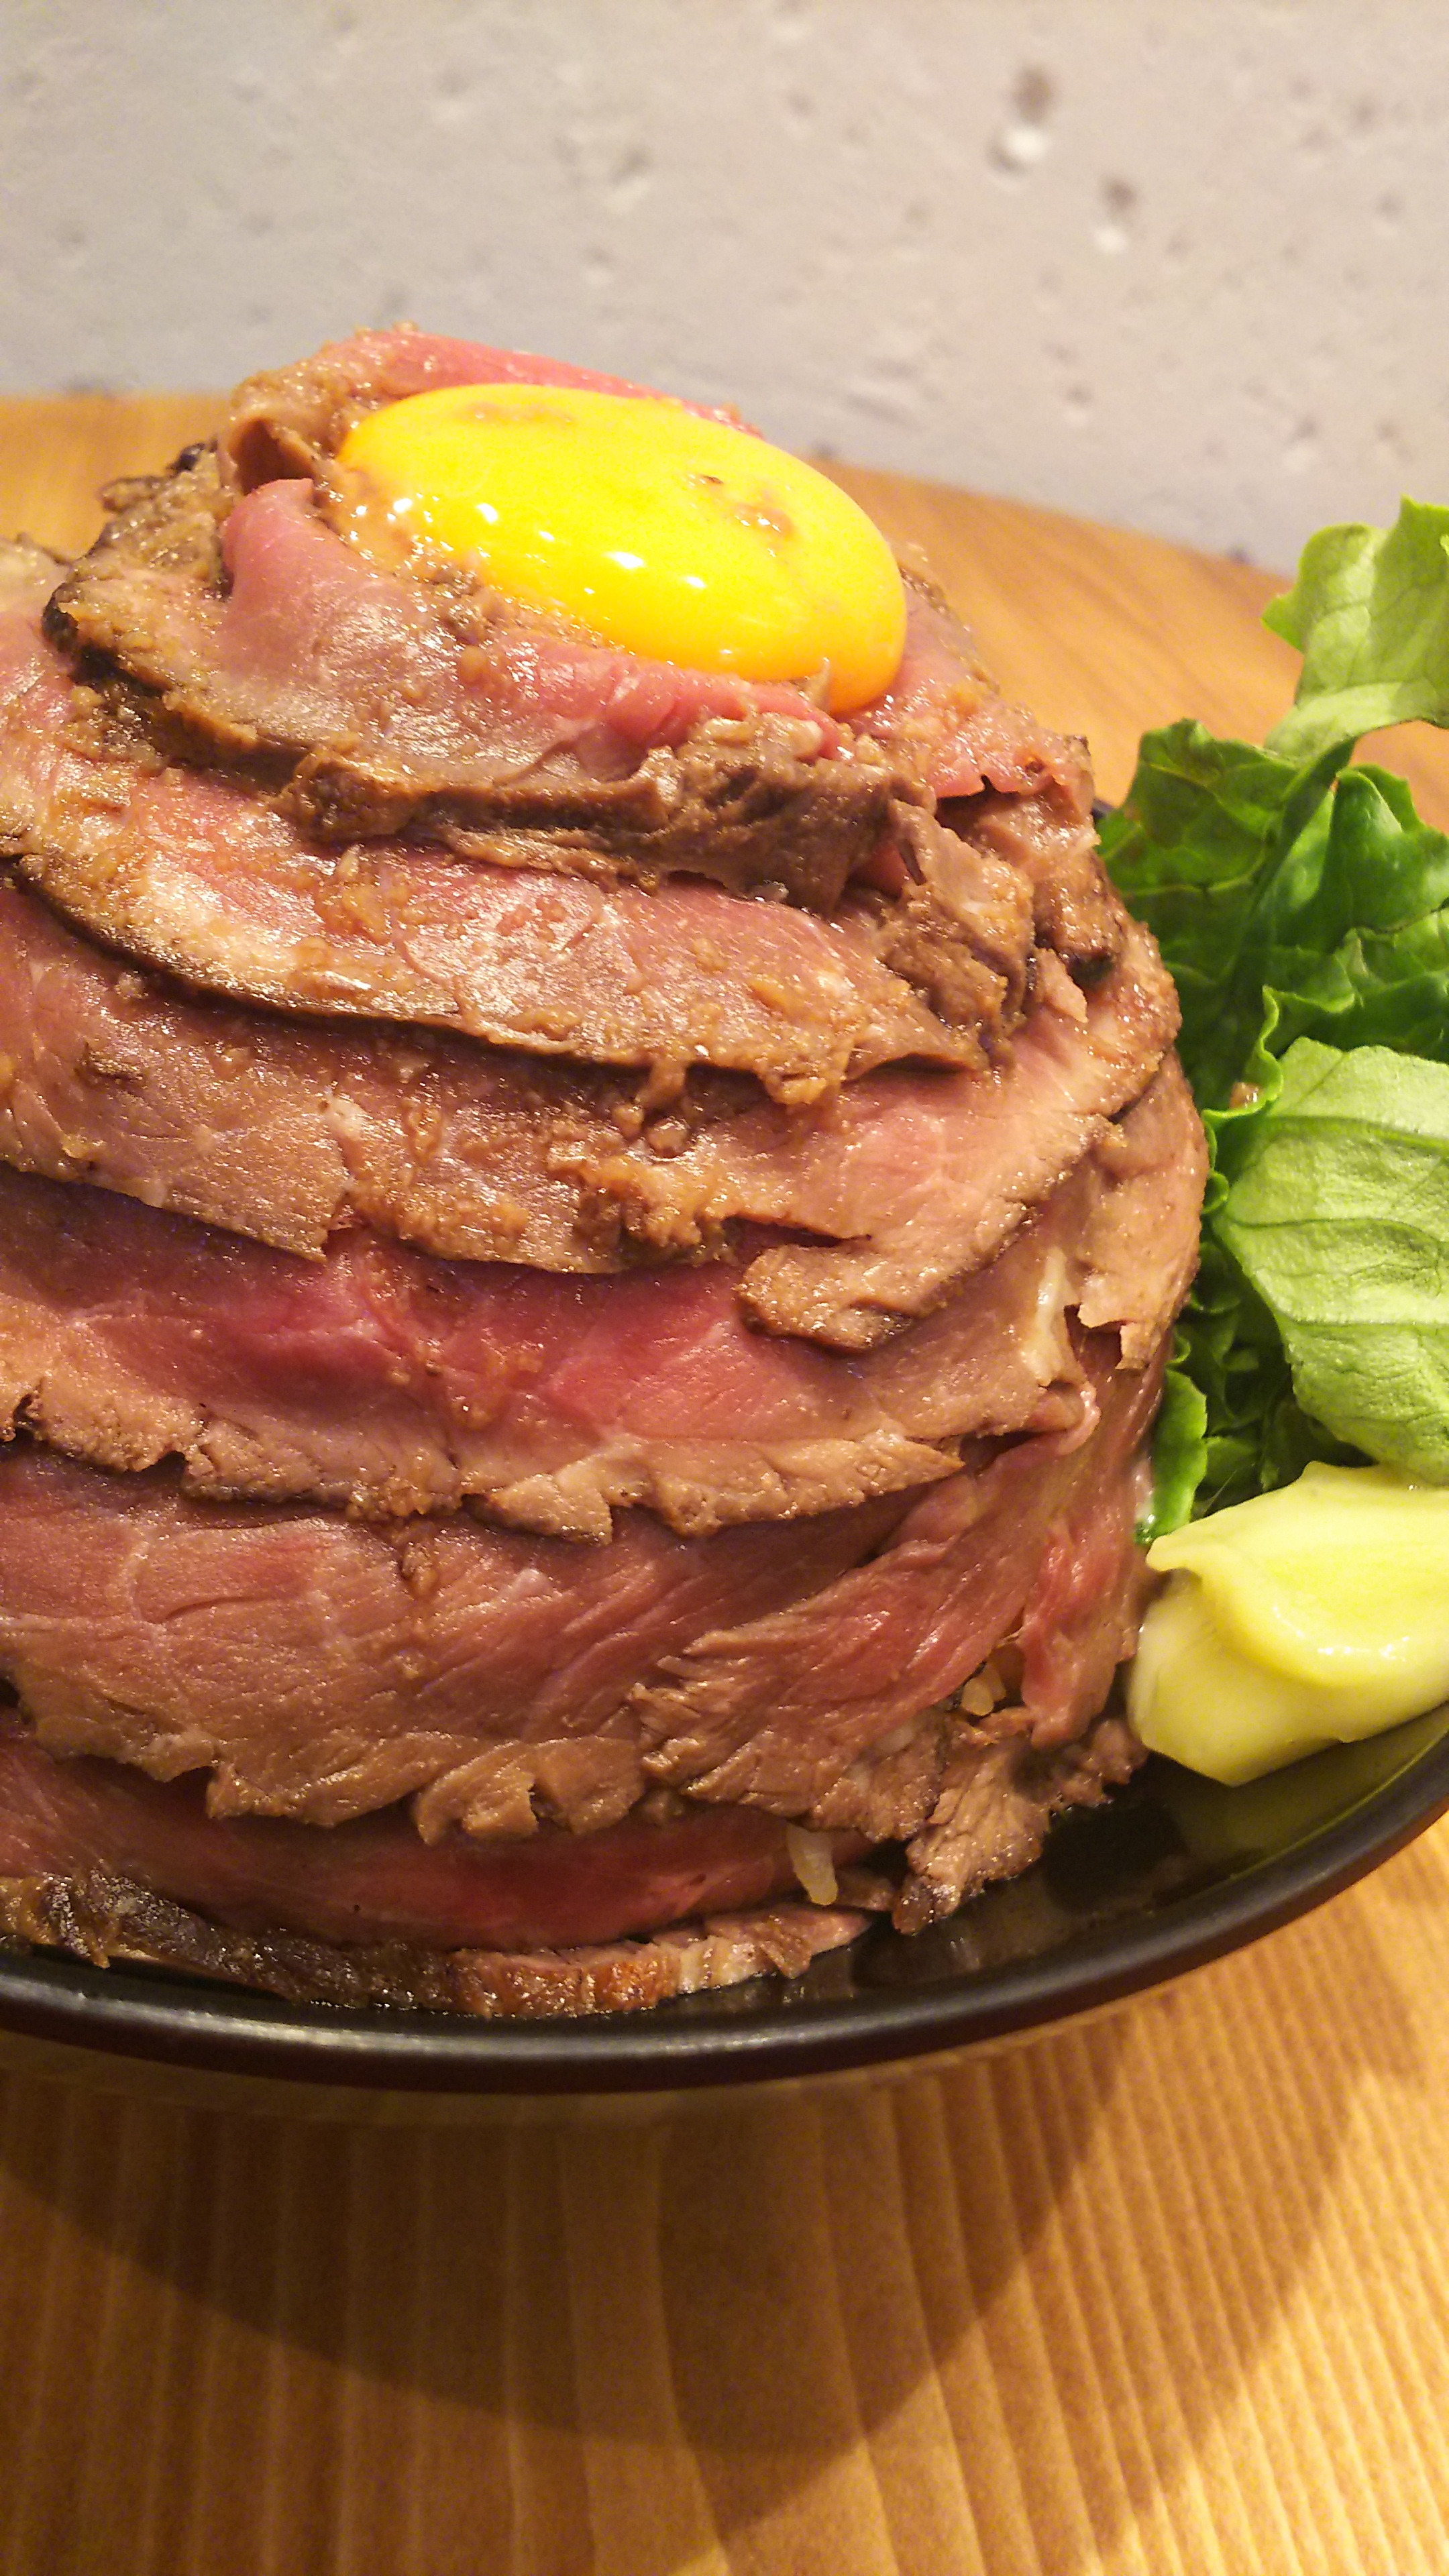 THE肉丼の店>